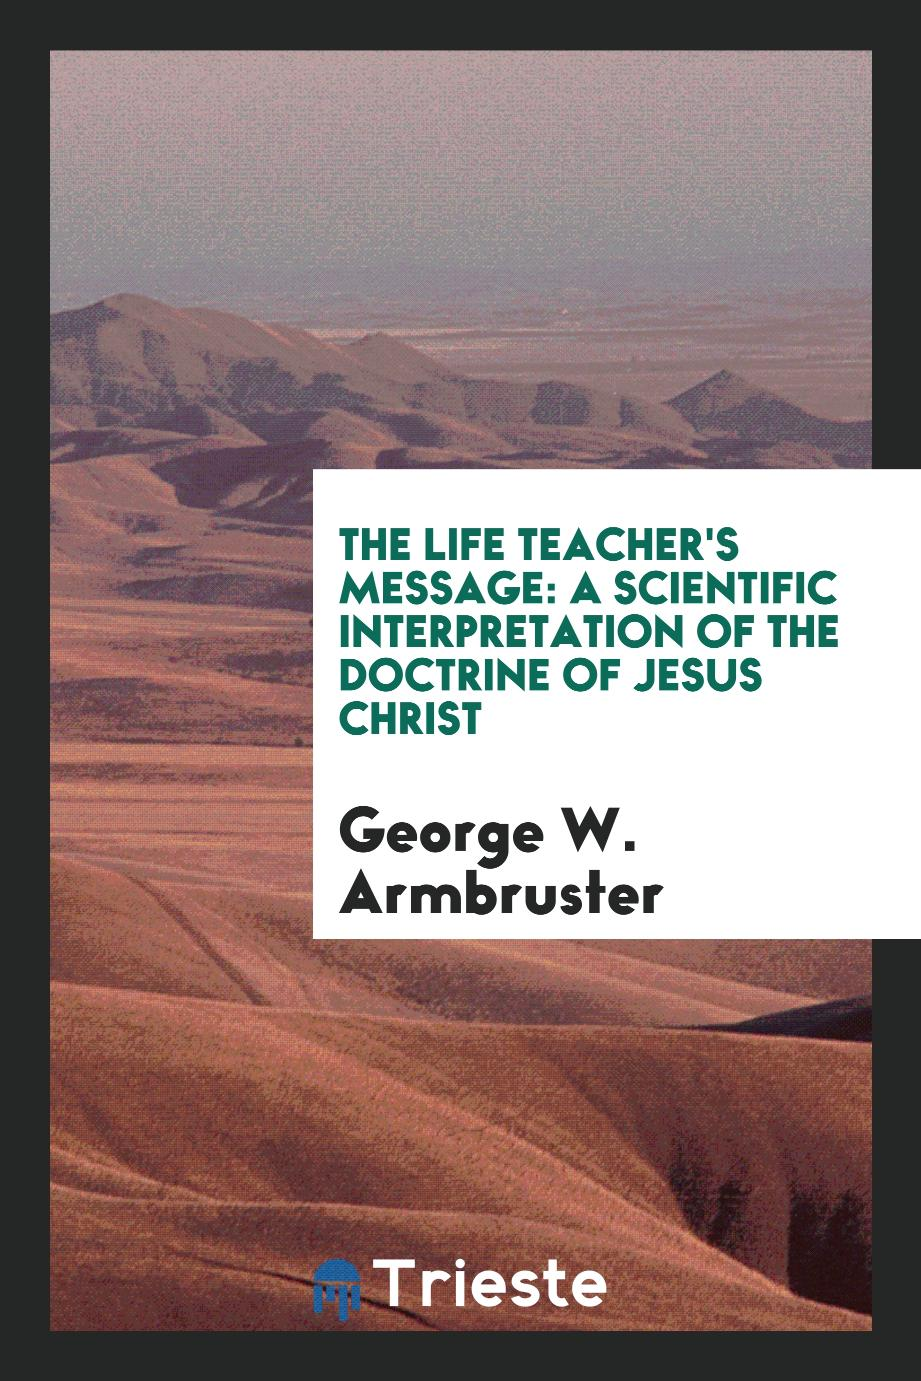 The Life Teacher's Message: A Scientific Interpretation of the Doctrine of Jesus Christ